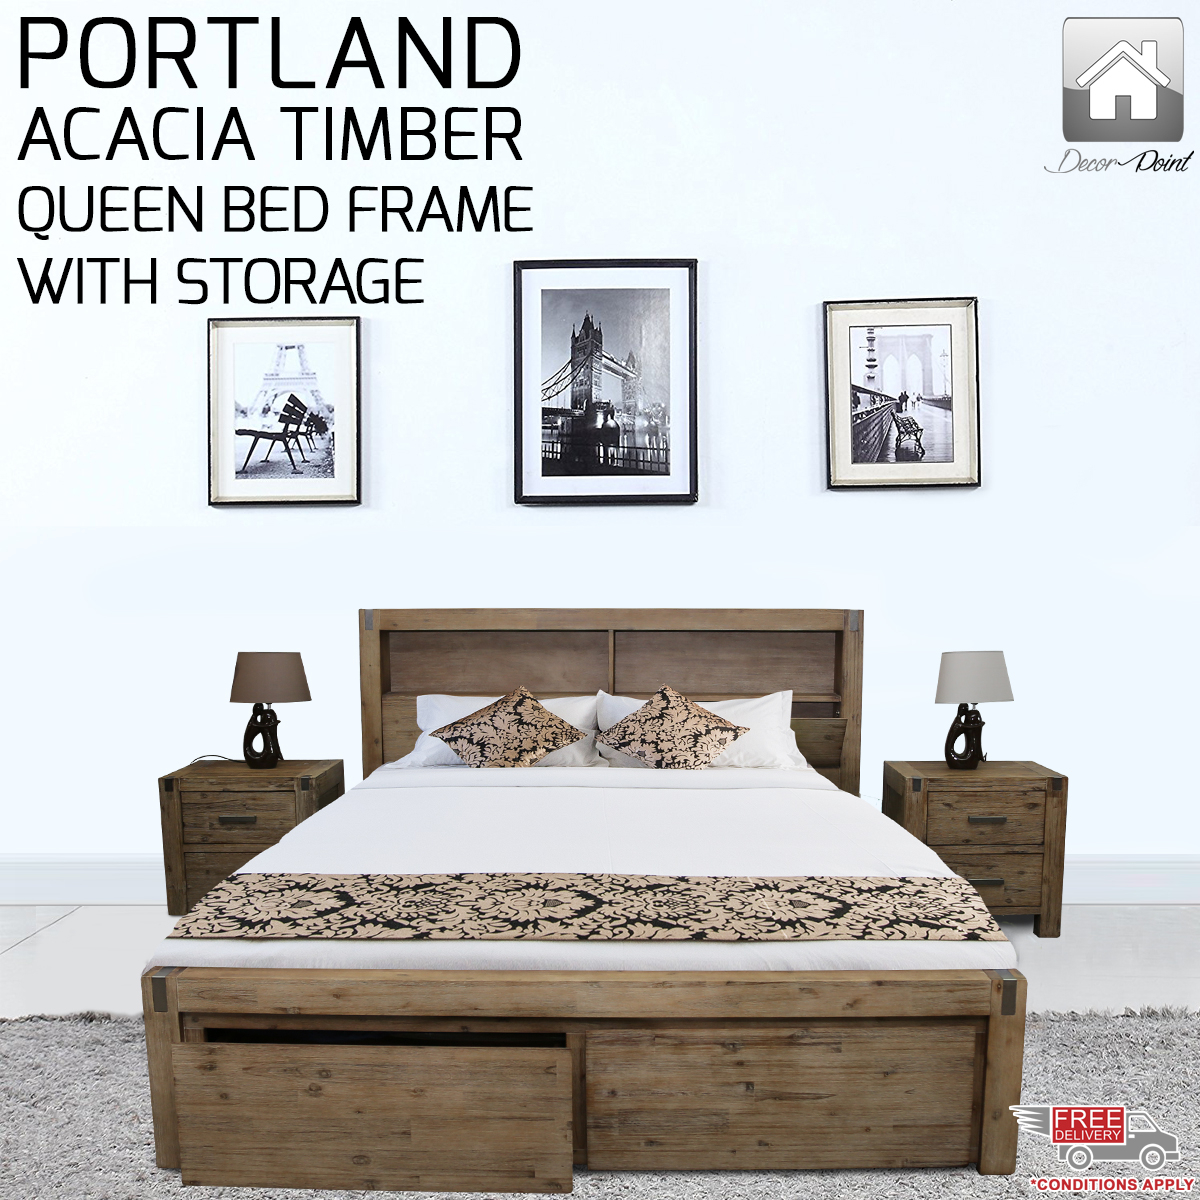 New Luxury Solid Acacia Timber Portland Espresso Queen Bed Frame